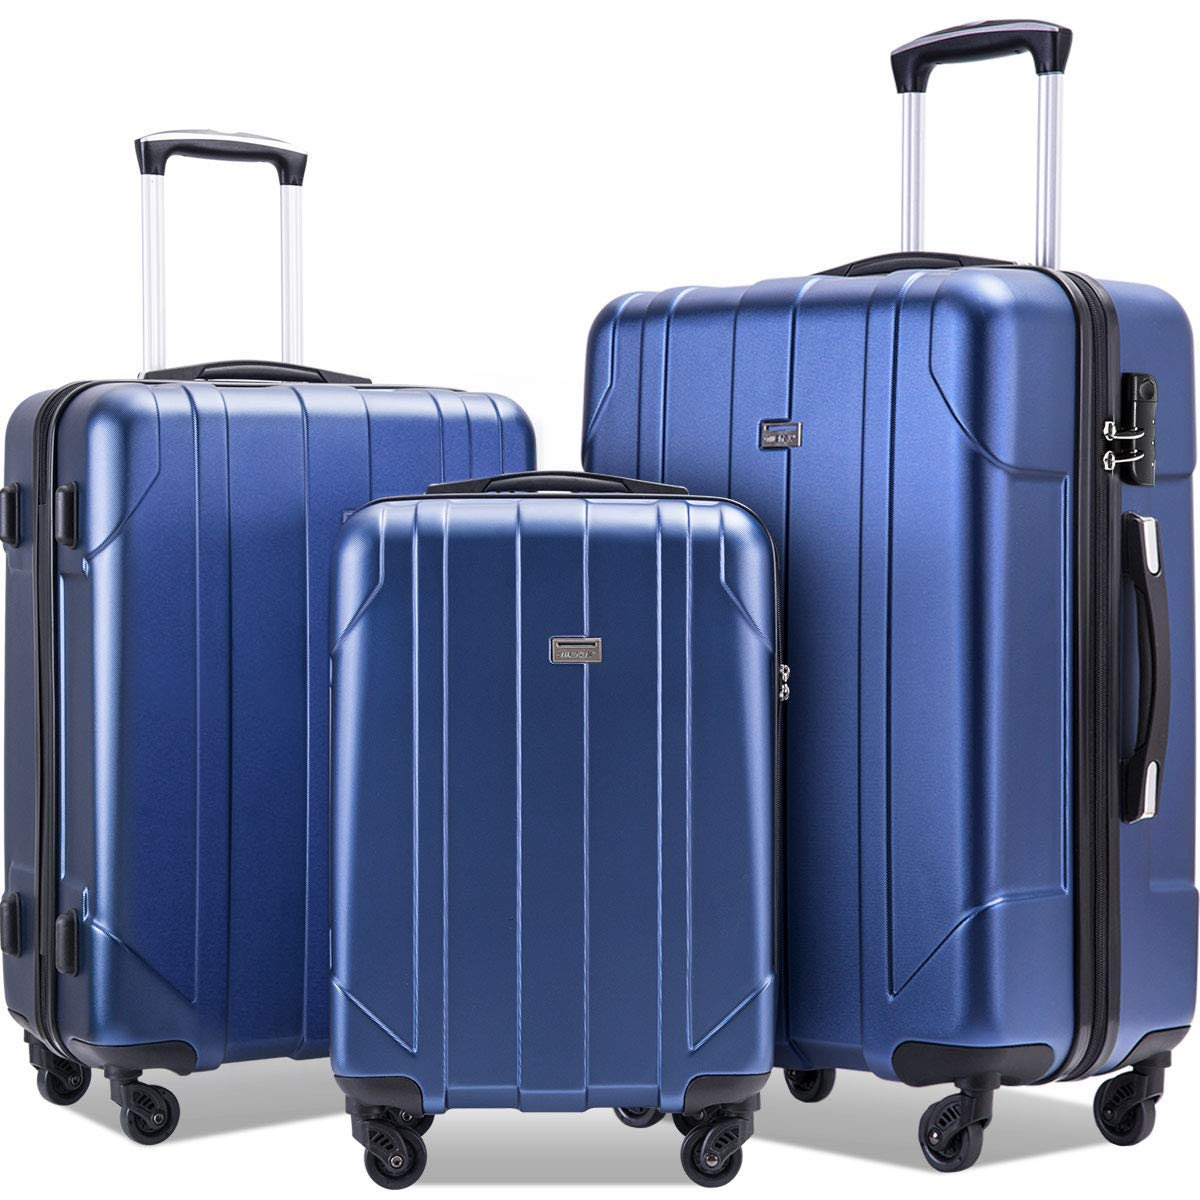 Merax 3 Piece P.E.T Luggage Set Eco-friendly Light Weight Spinner Suitcase(Blue) by Merax